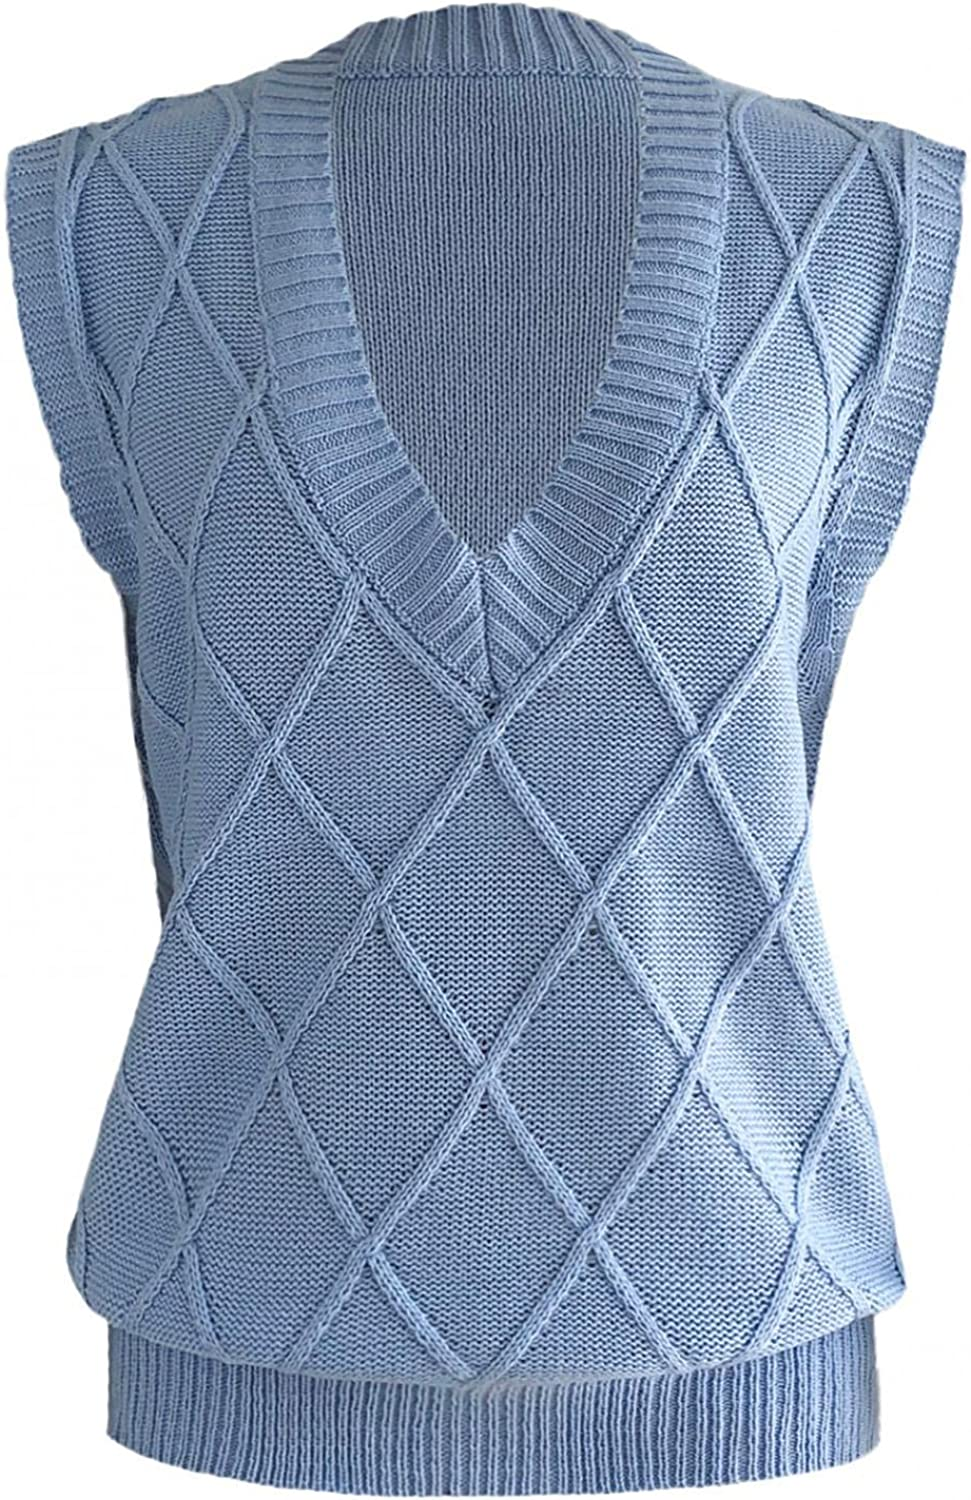 Yamart Womens Knit Sweater Vest Lingge V-Neck Casual Sweater Lightweight Solid Color Sweater Jumper Tops